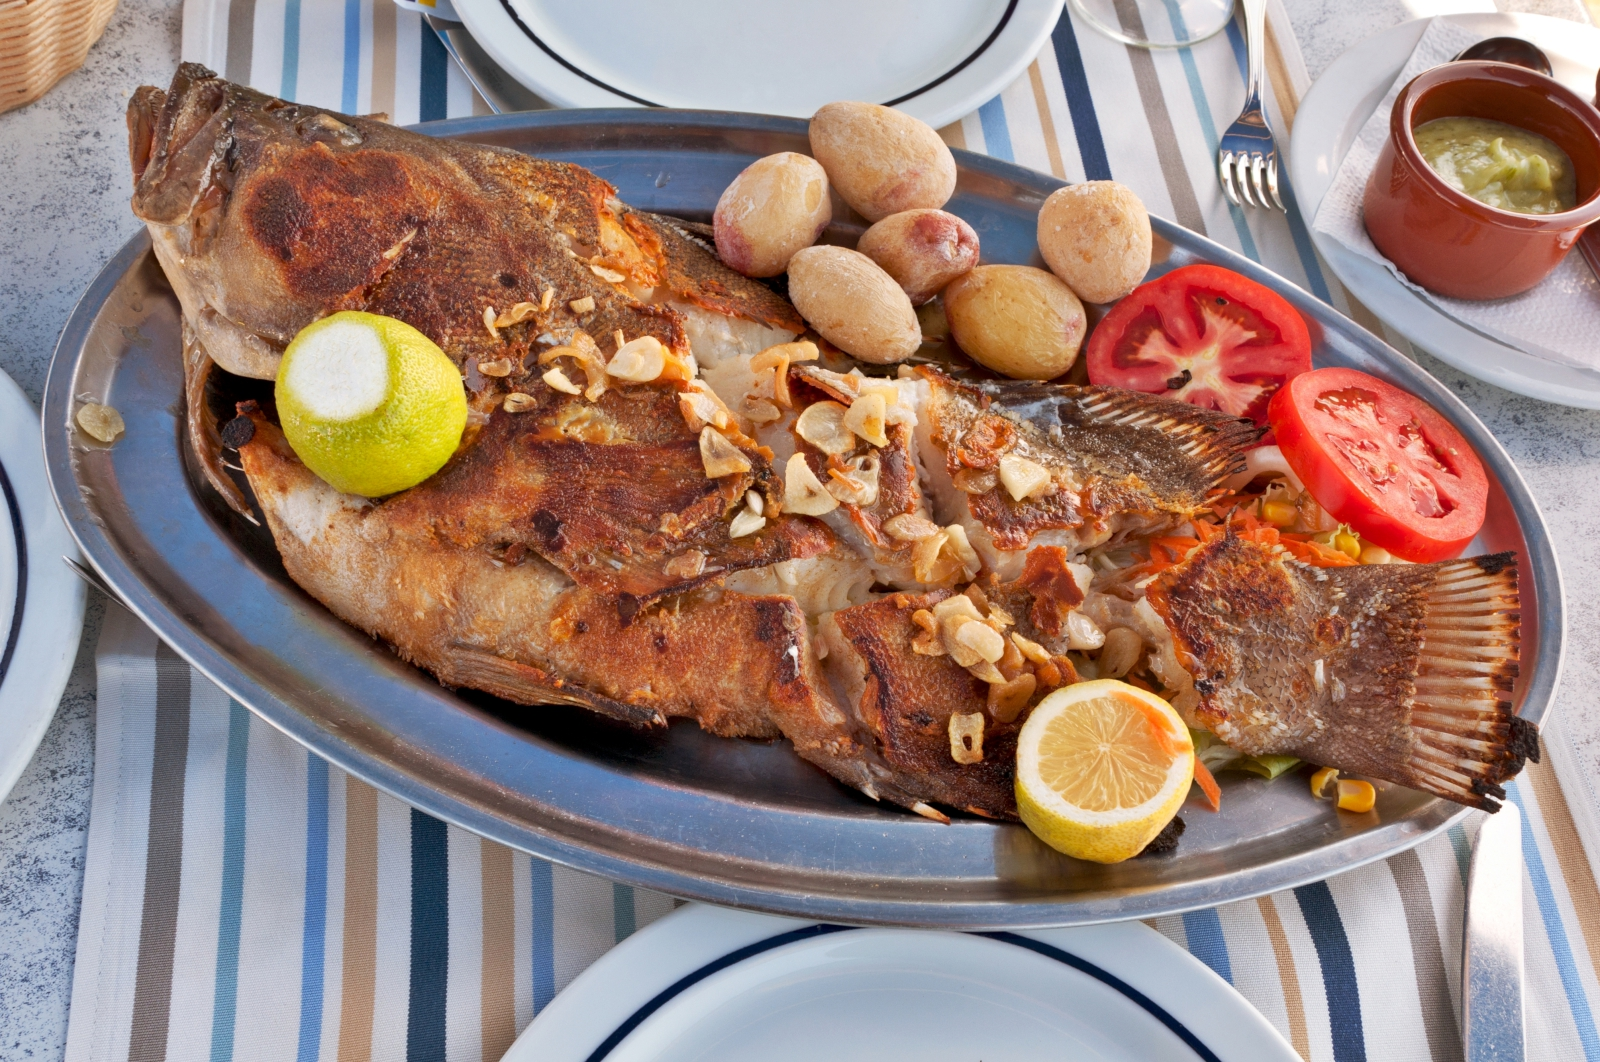 'Typical Canarian Roasted sea fish on plate with tomatoes, potatoes, lemon and spices' - Lanzarote